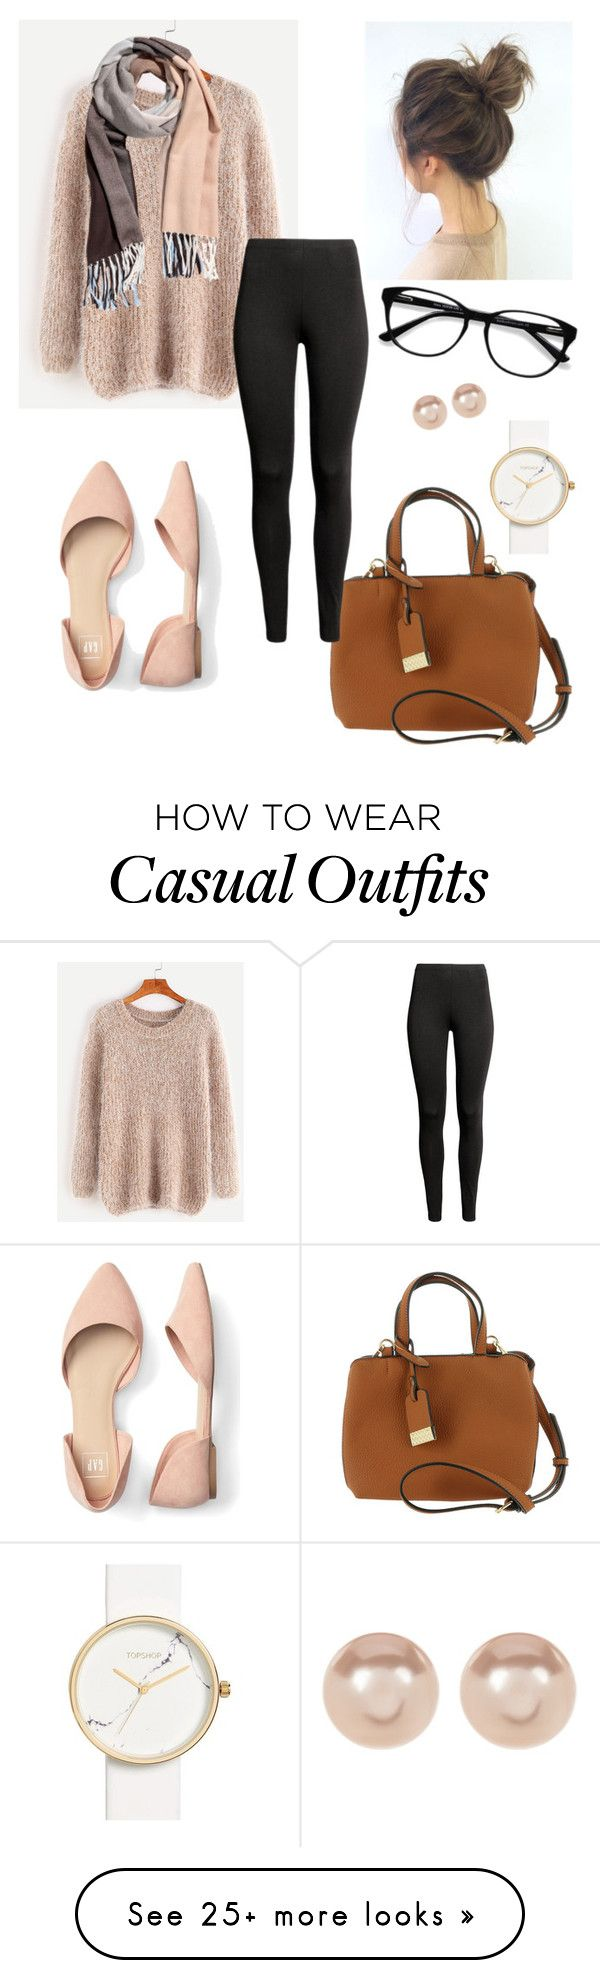 """""""work casual"""" by carlee-bradford on Polyvore featuring Urban Expressions, EyeBuyDirect.com, Nordstrom Rack and Topshop"""